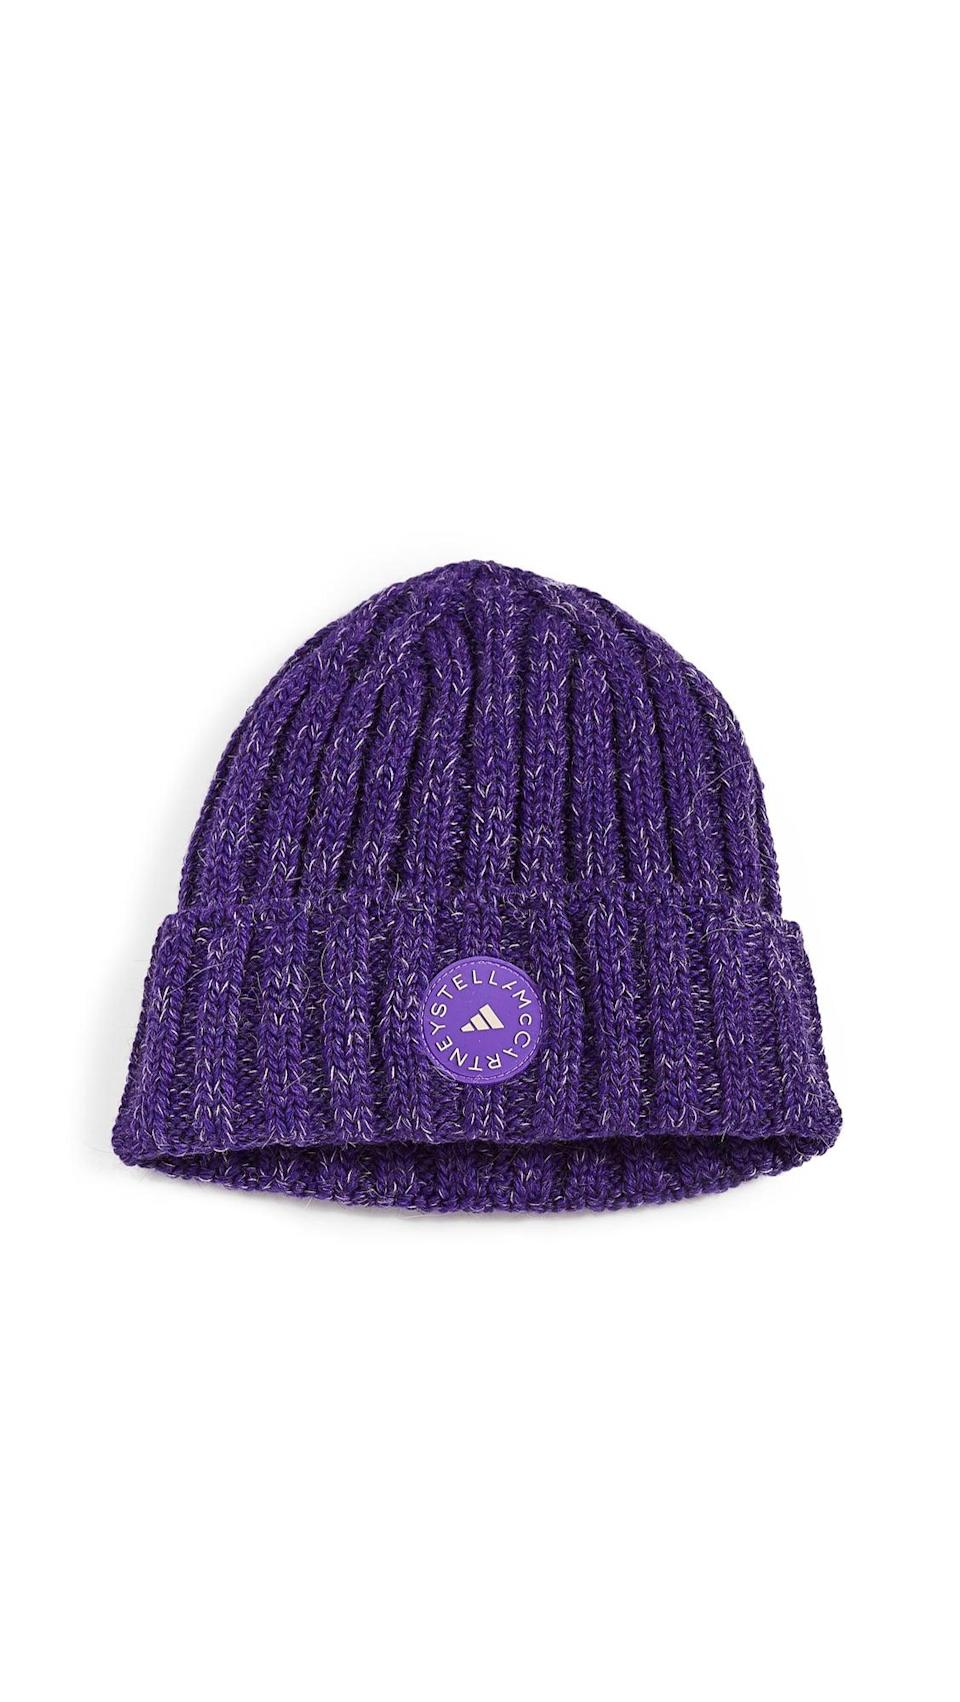 <p><span>Adidas by Stella McCartney Beanie Hat</span> ($57)</p>